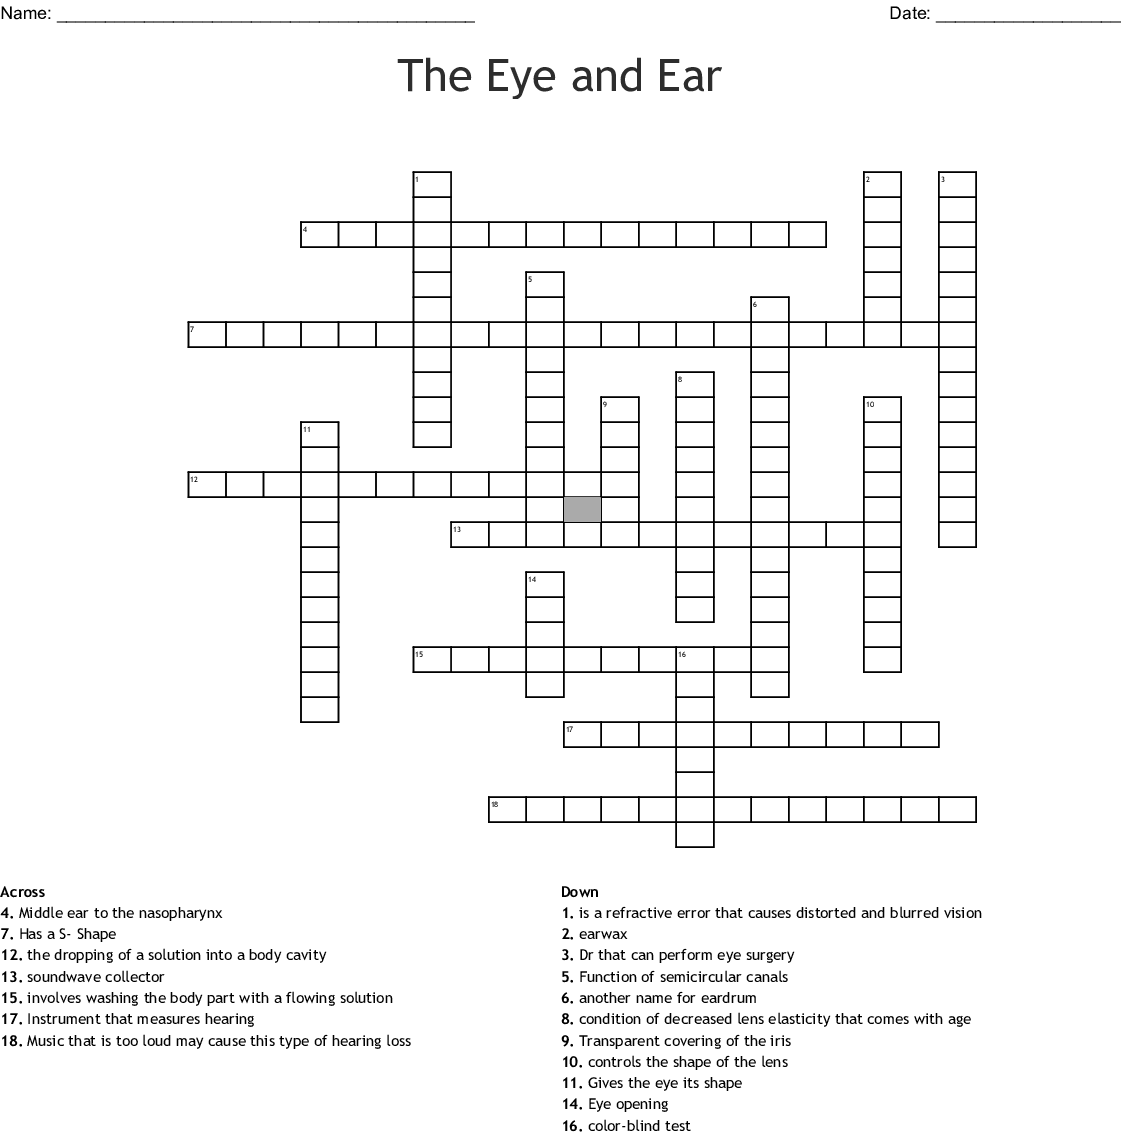 The Eye And Ear Crossword